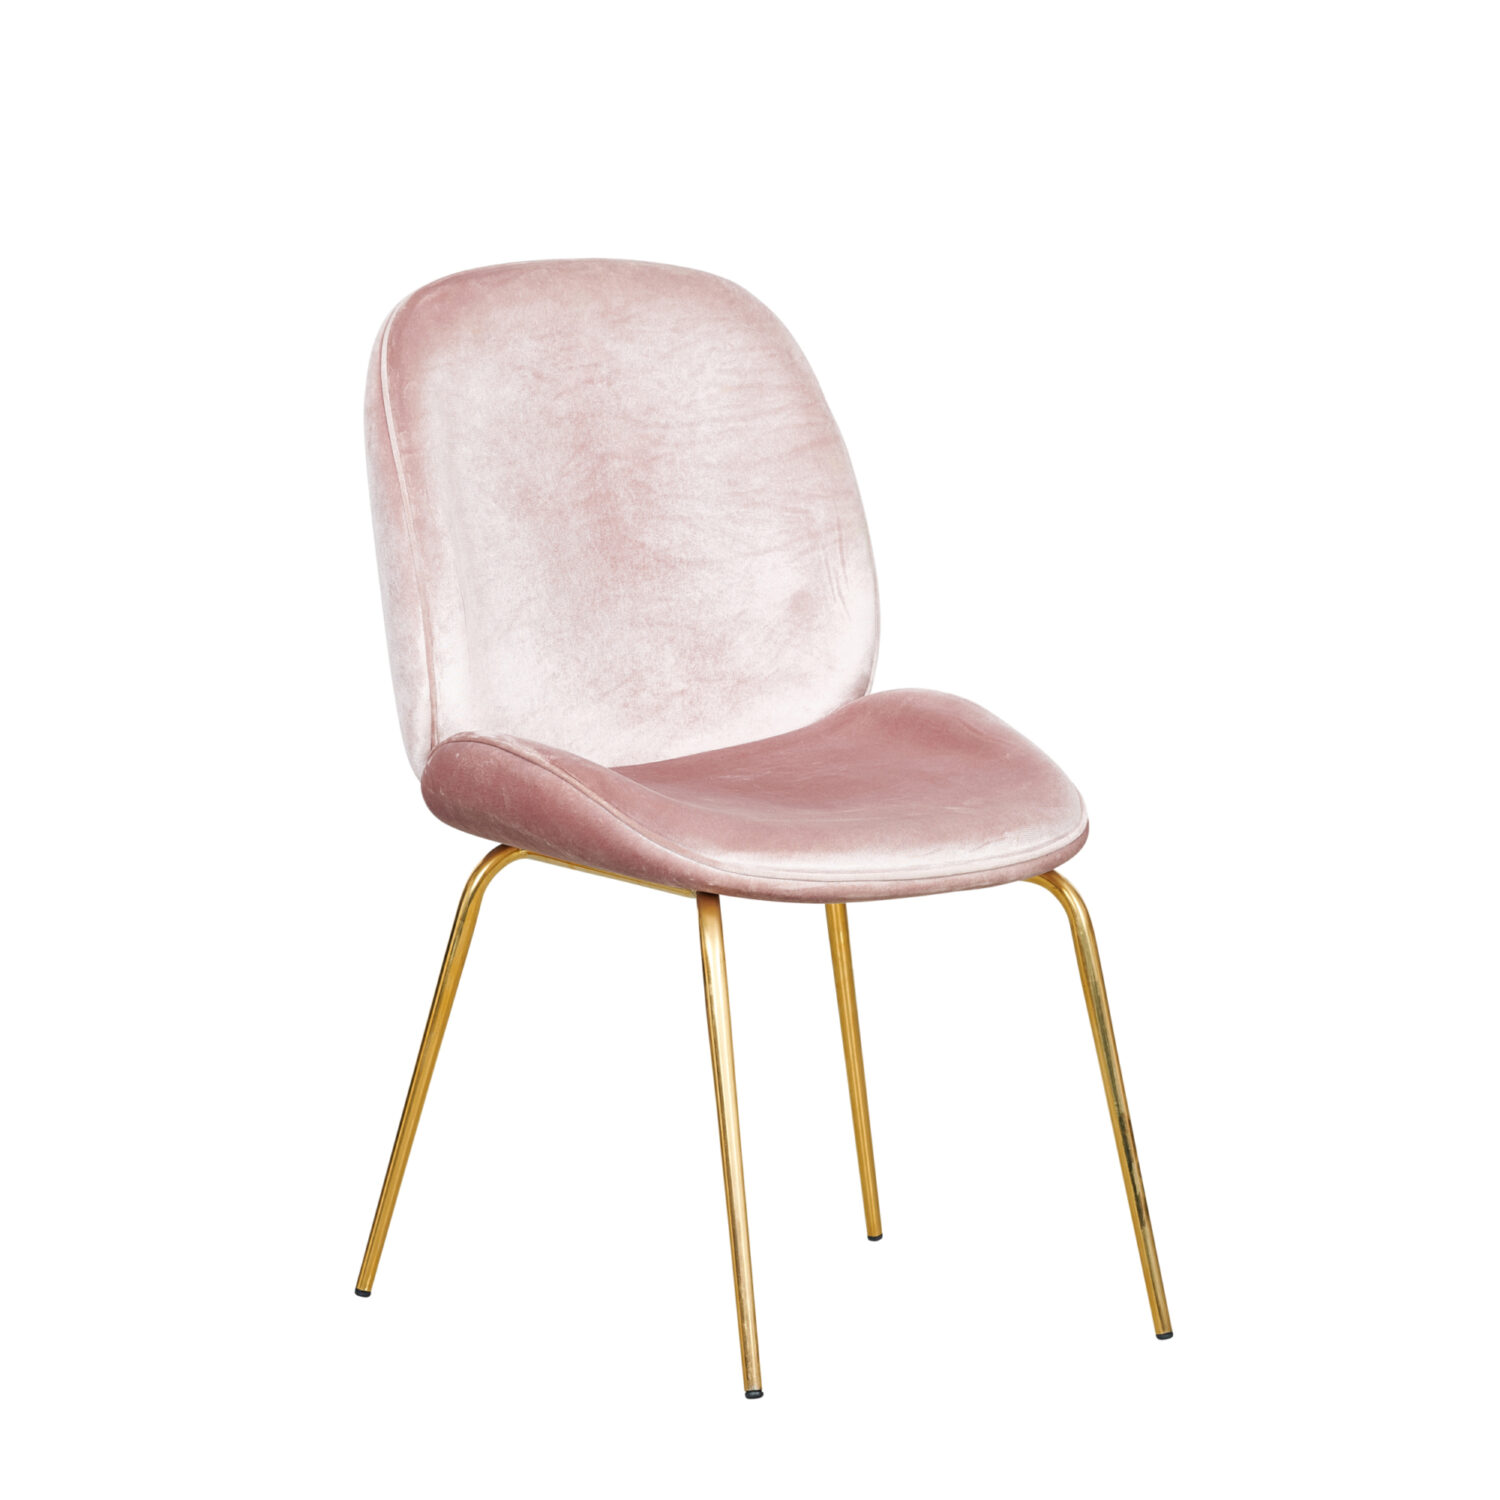 Grace Occasional Chair - Blush Seat & Gold Legs - Event Artillery